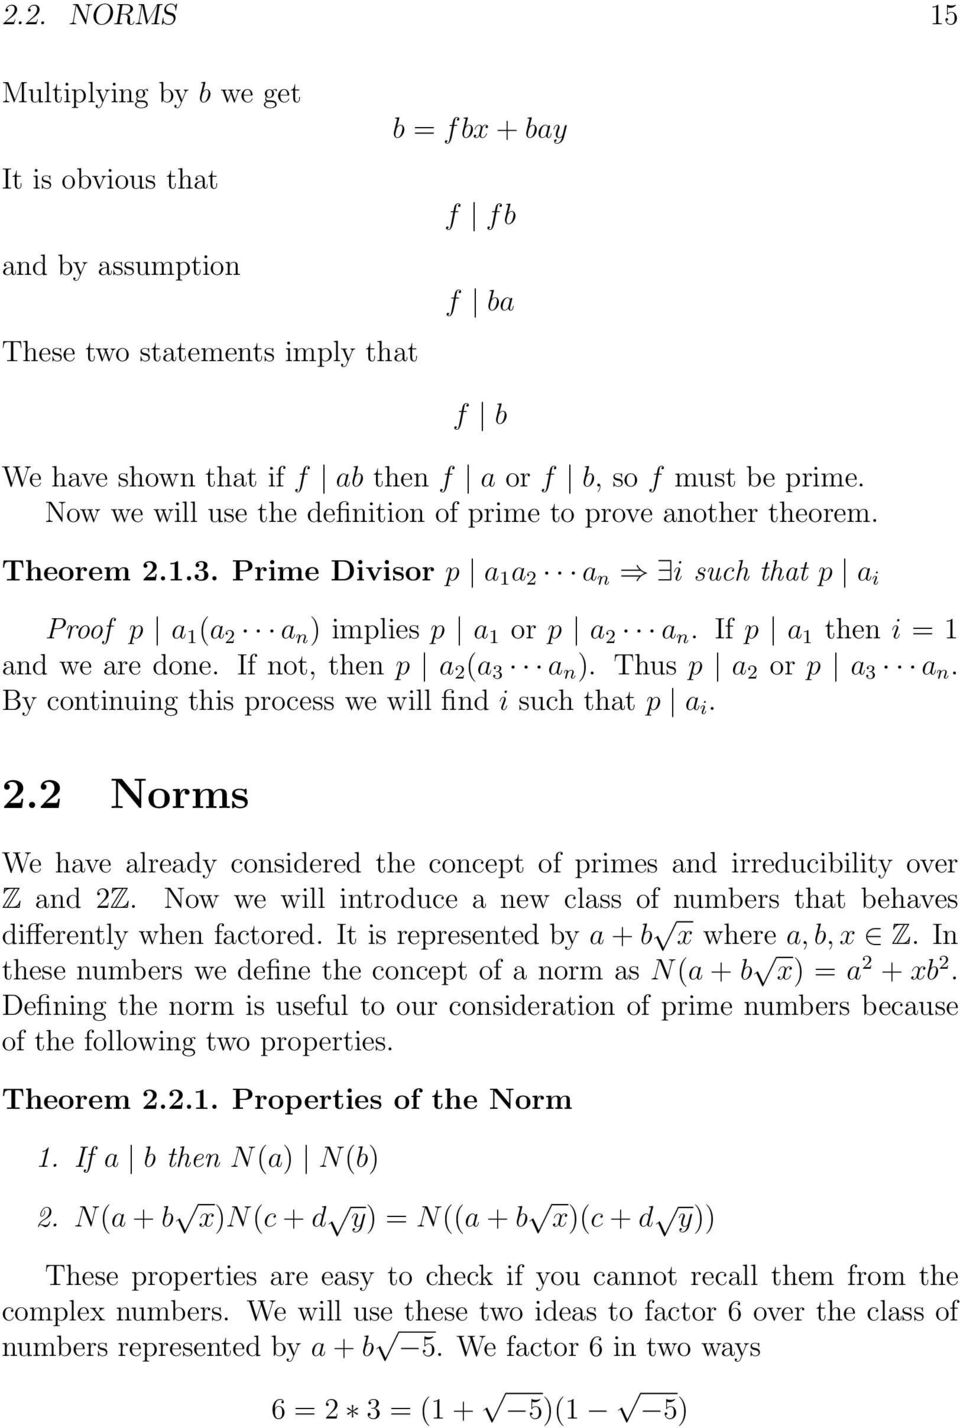 If p a 1 then i = 1 and we are done. If not, then p a 2 (a 3 a n ). Thus p a 2 or p a 3 a n. By continuing this process we will find i such that p a i. 2.2 Norms We have already considered the concept of primes and irreducibility over Z and 2Z.